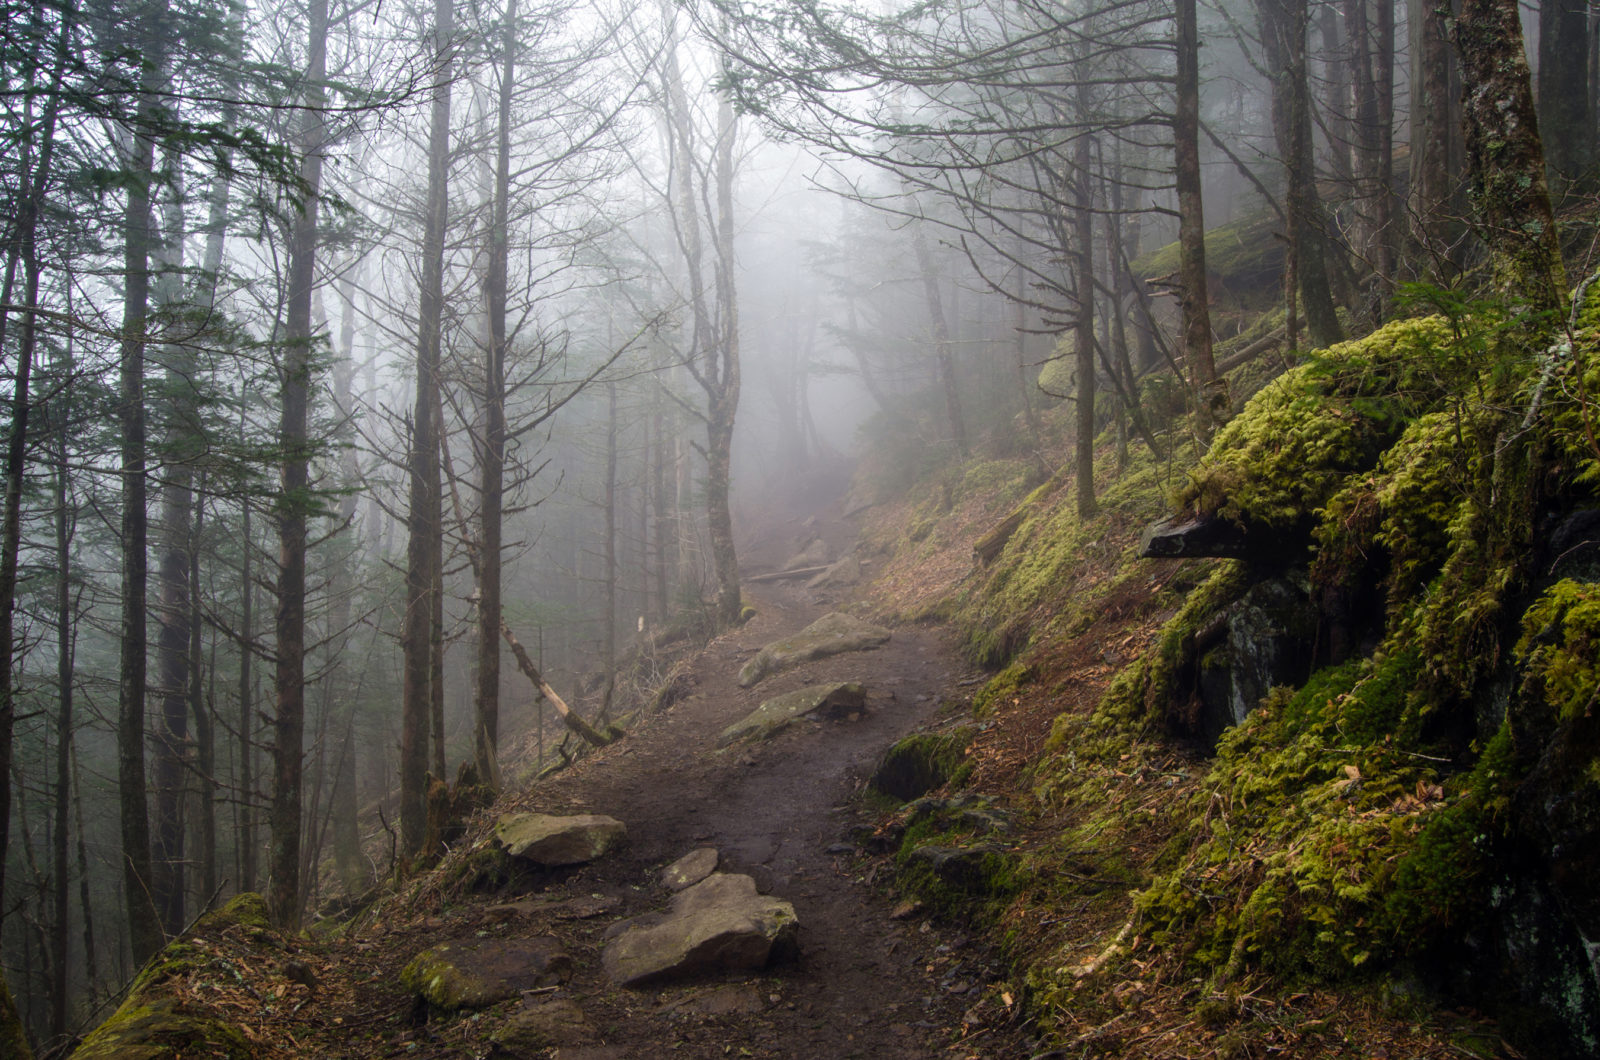 Foggy View Along the Appalachian Trail